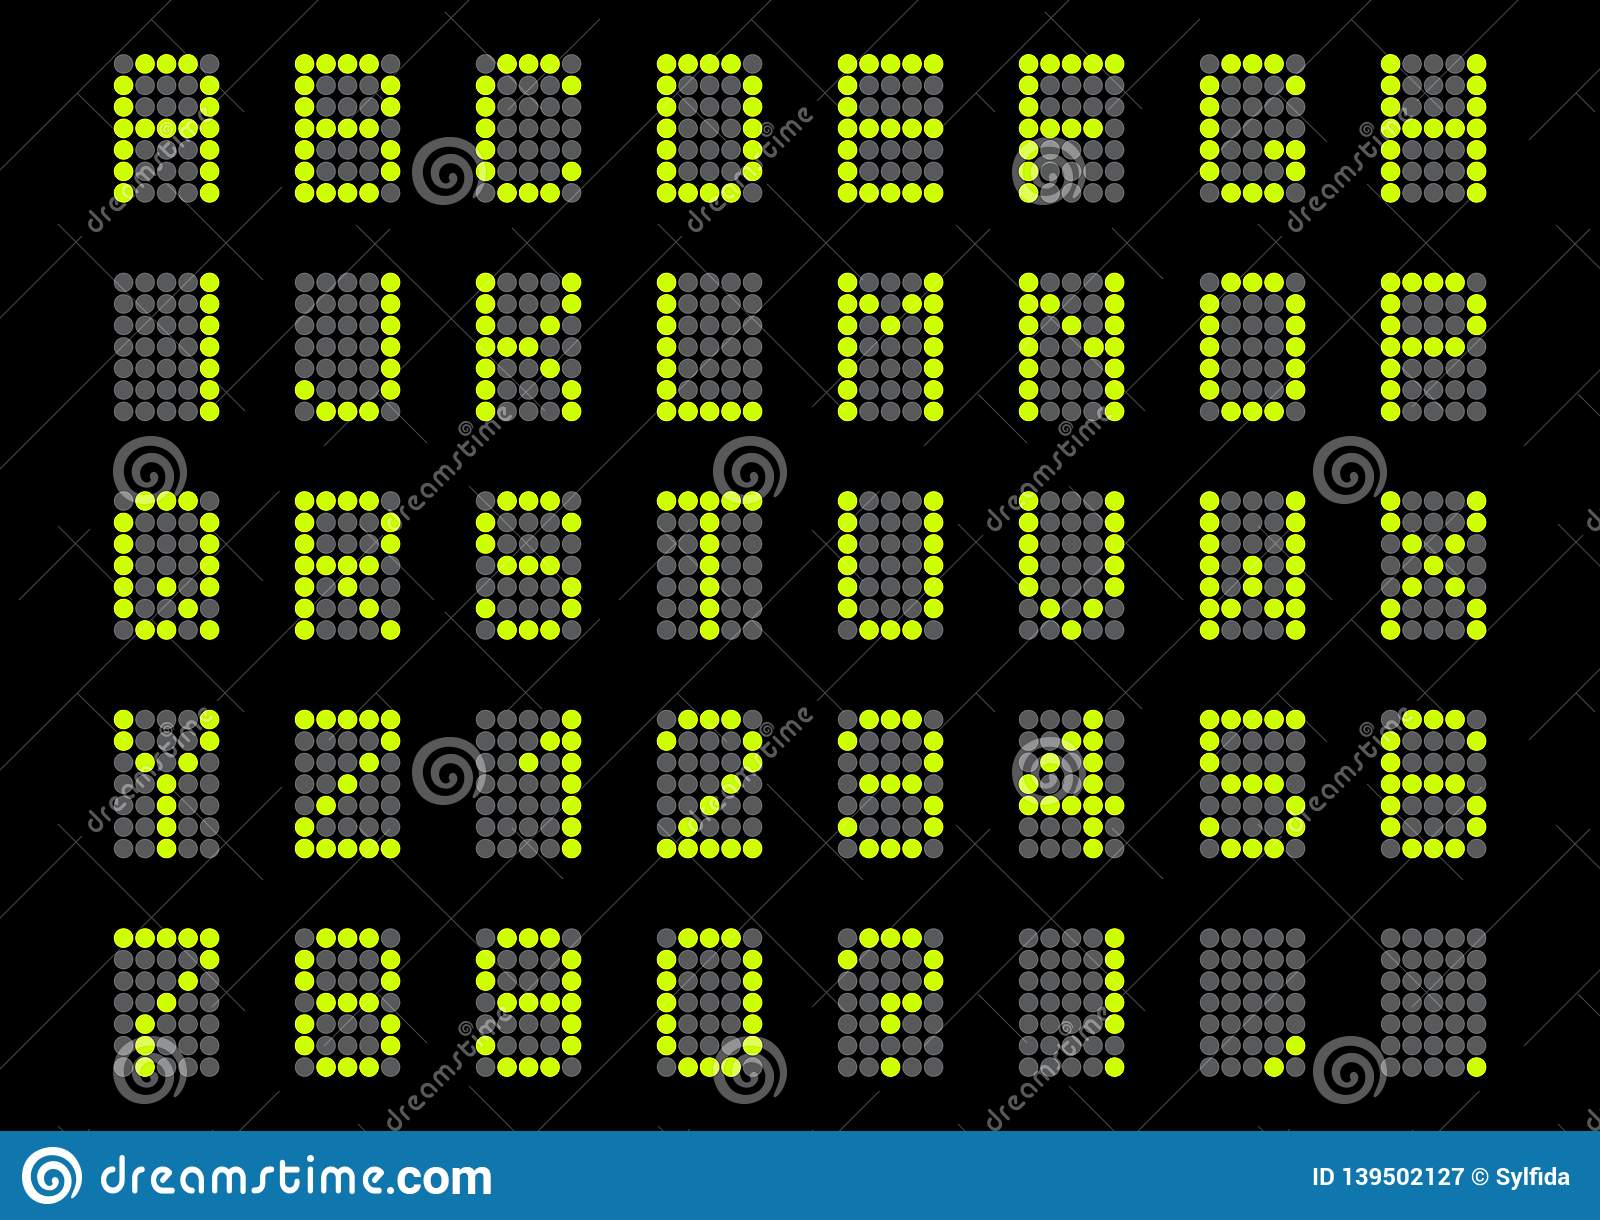 Digital alphabet and numbers. Vector illustration